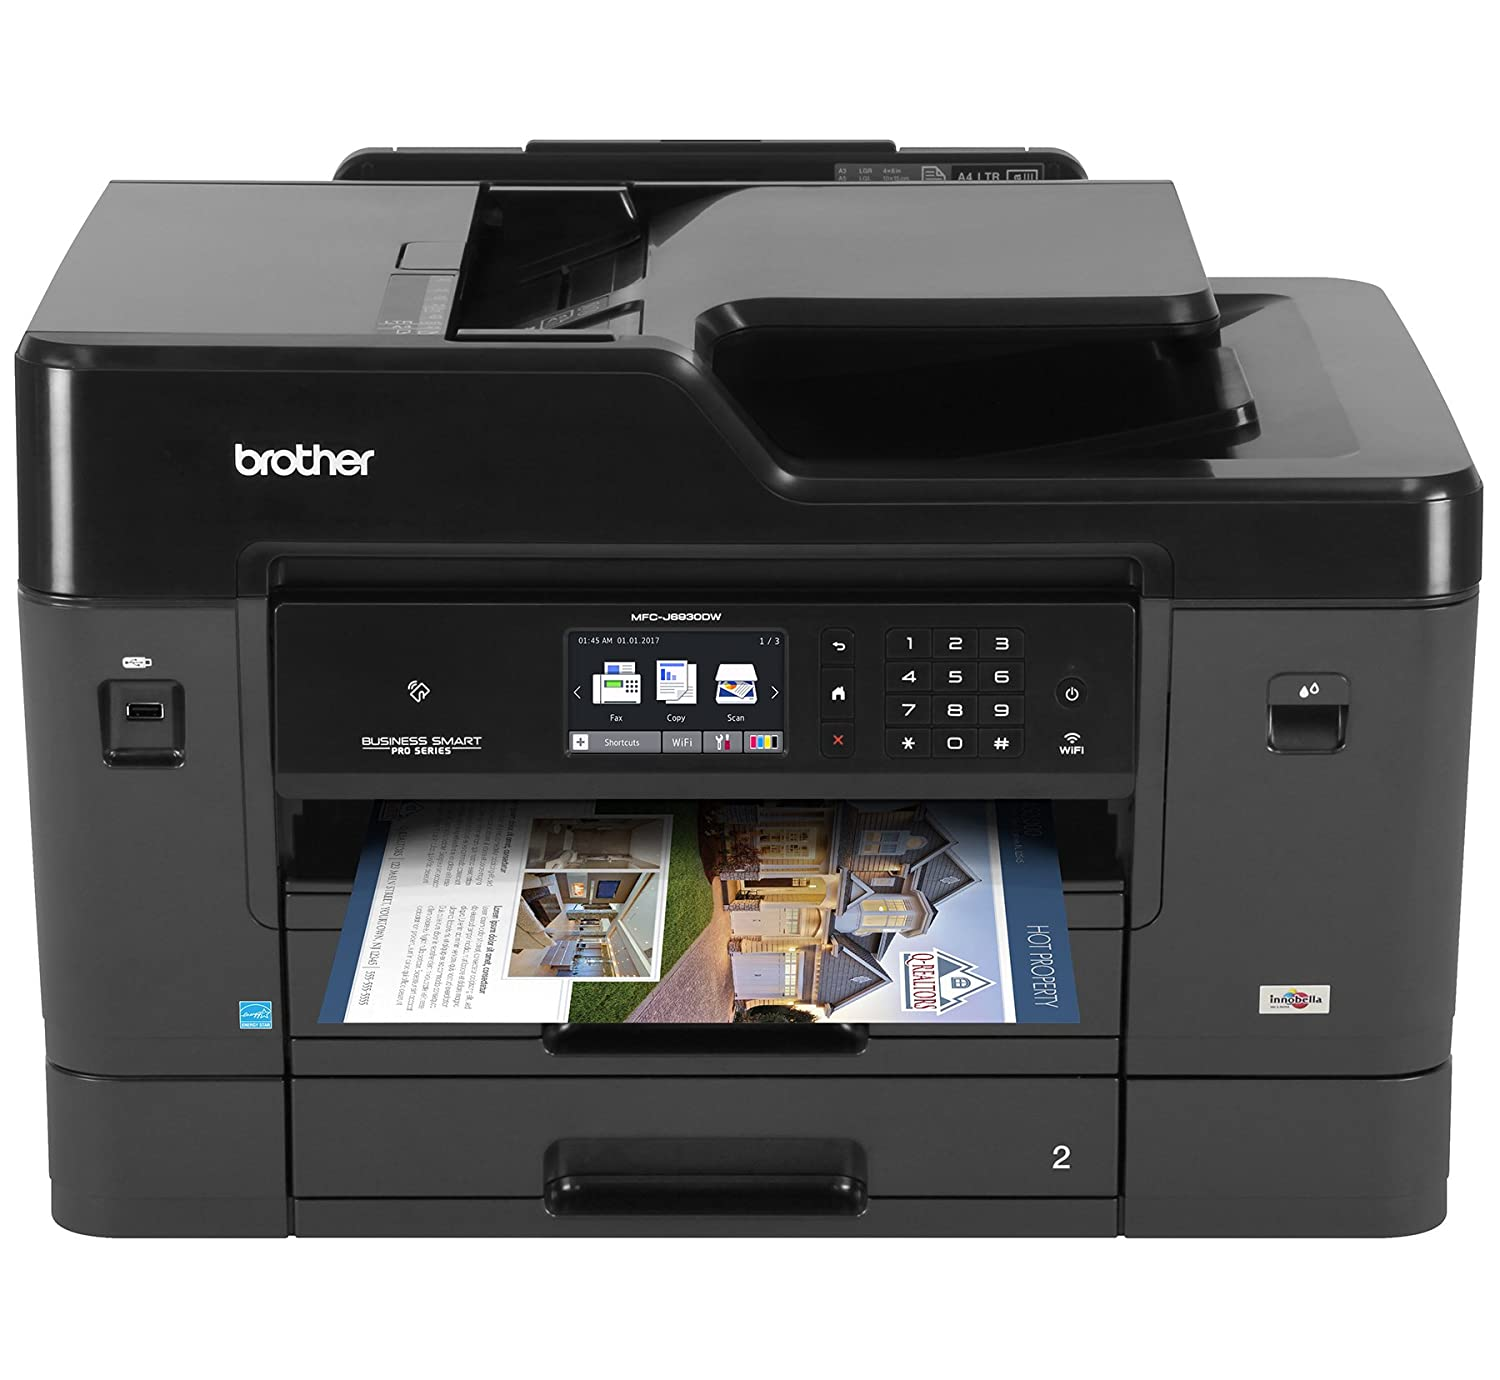 Brother MFCJ6930DW Wireless Color Printer Scanner, Copier & Fax Brother Canada - CE